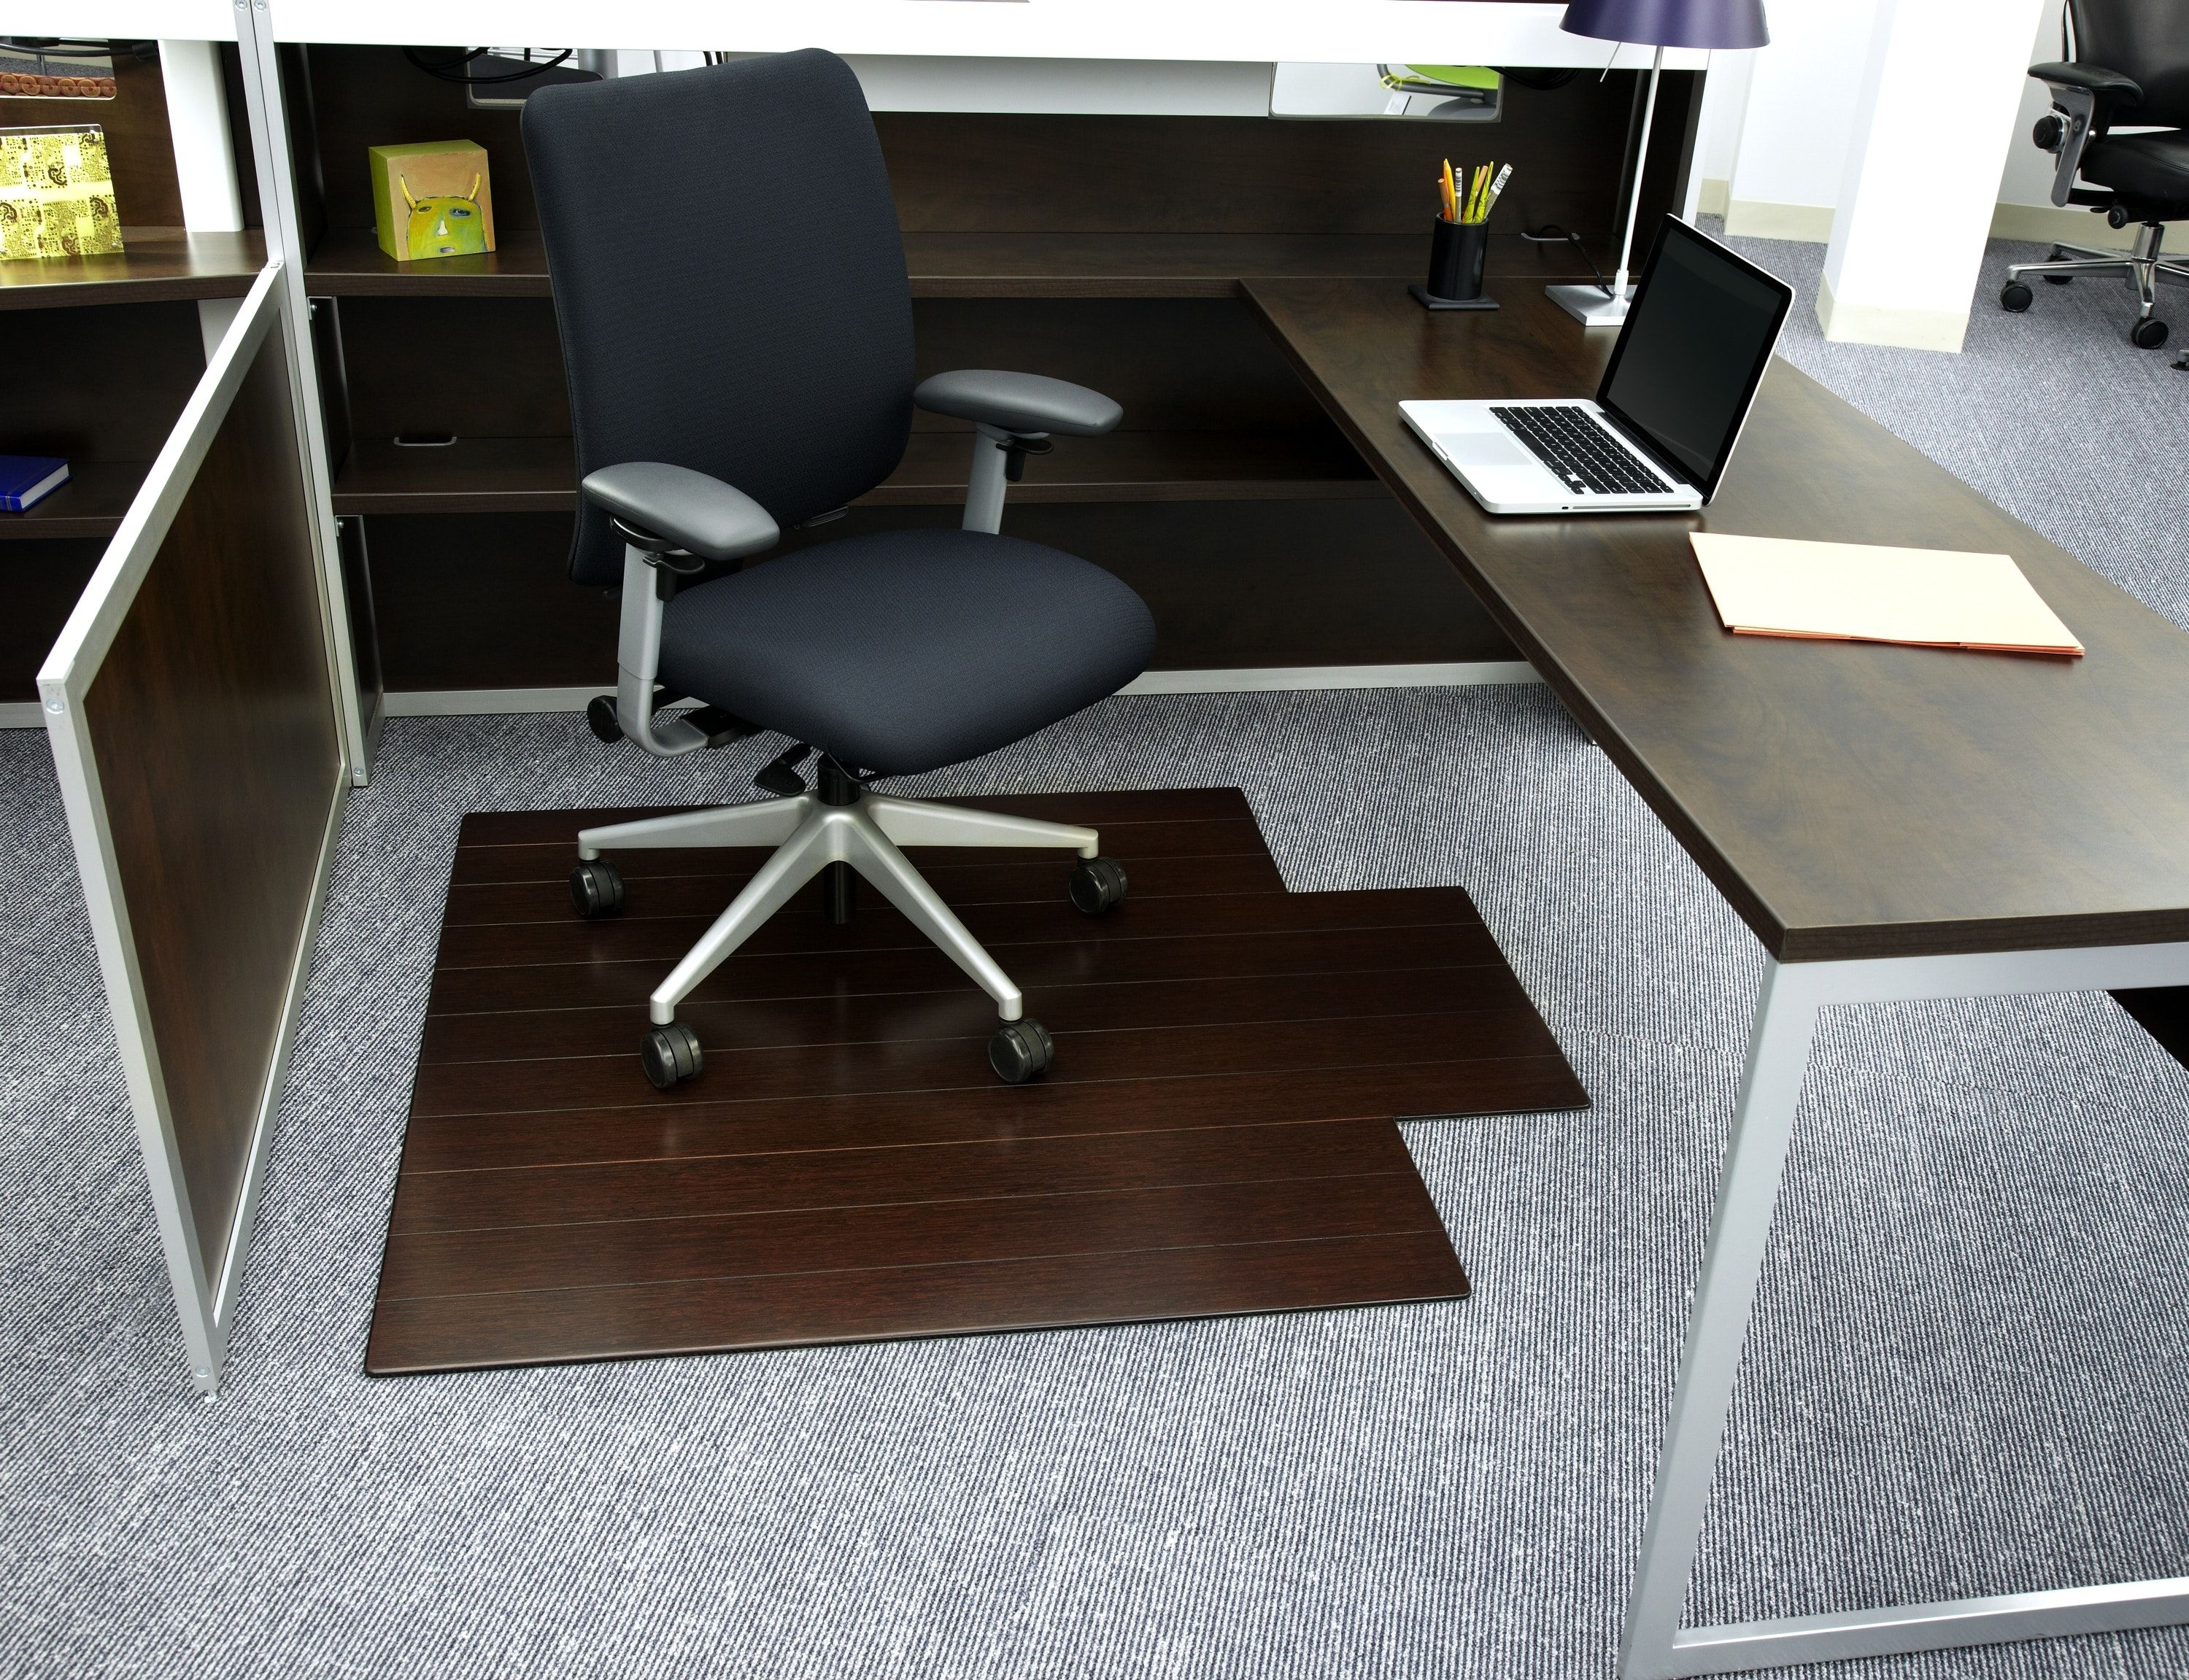 for static floor carpet anti mats transparent mat chair